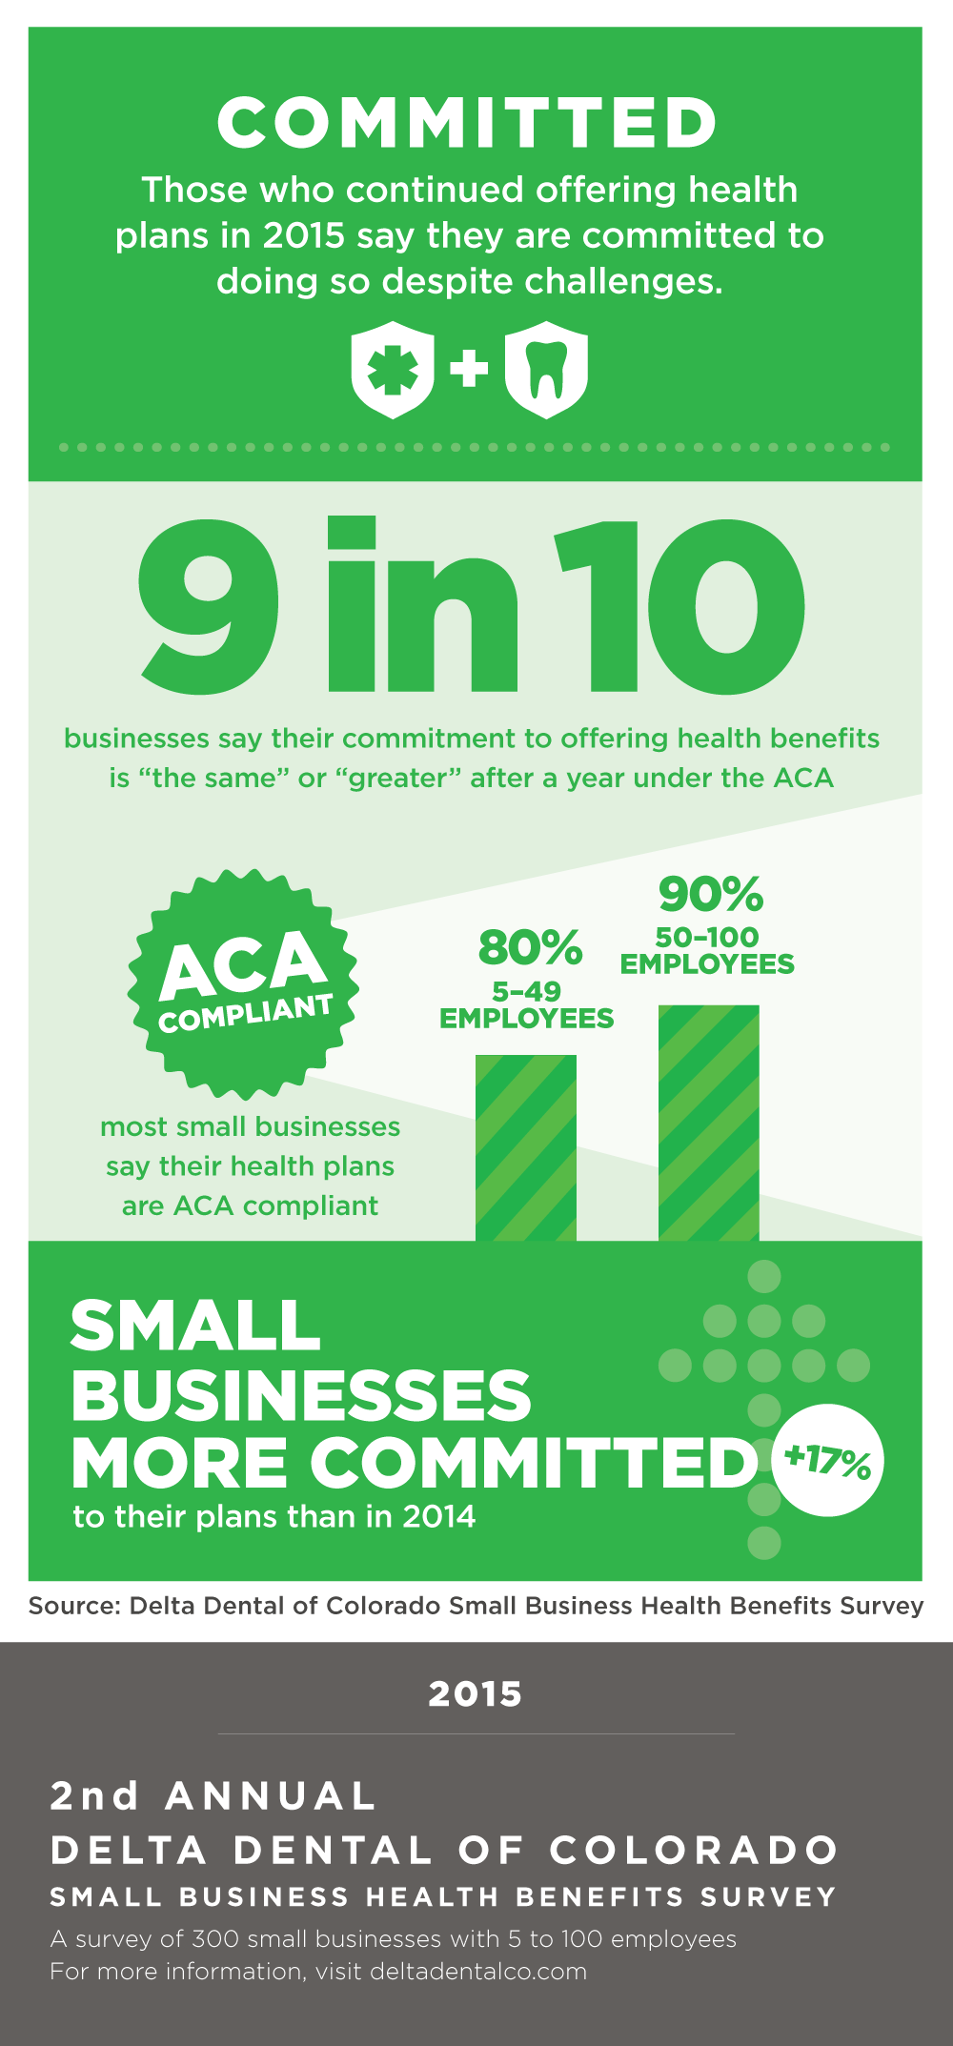 Colorado small businesses say they are committed to